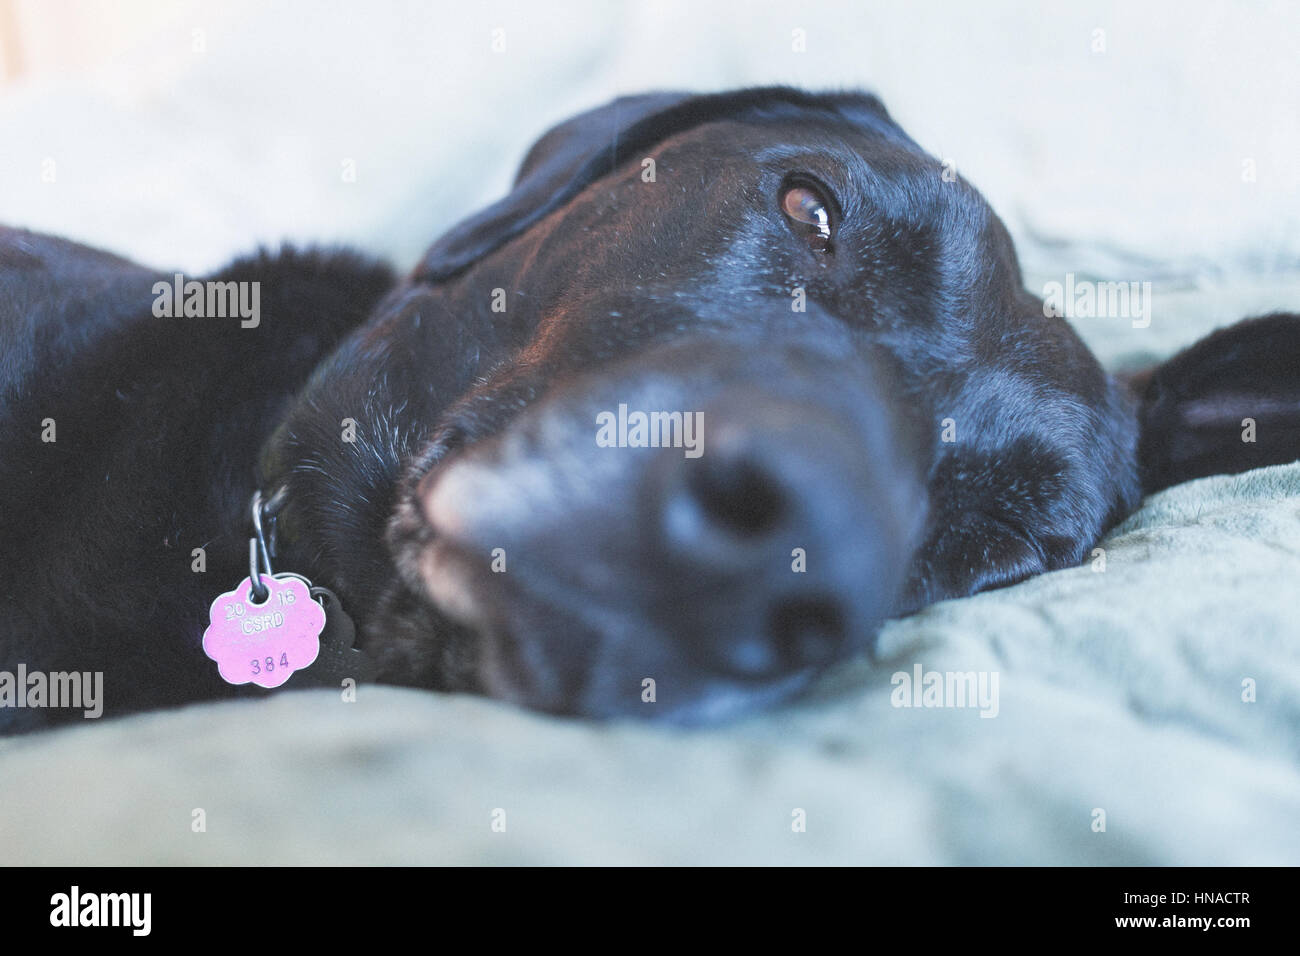 Big black dog resting on bed - Stock Image